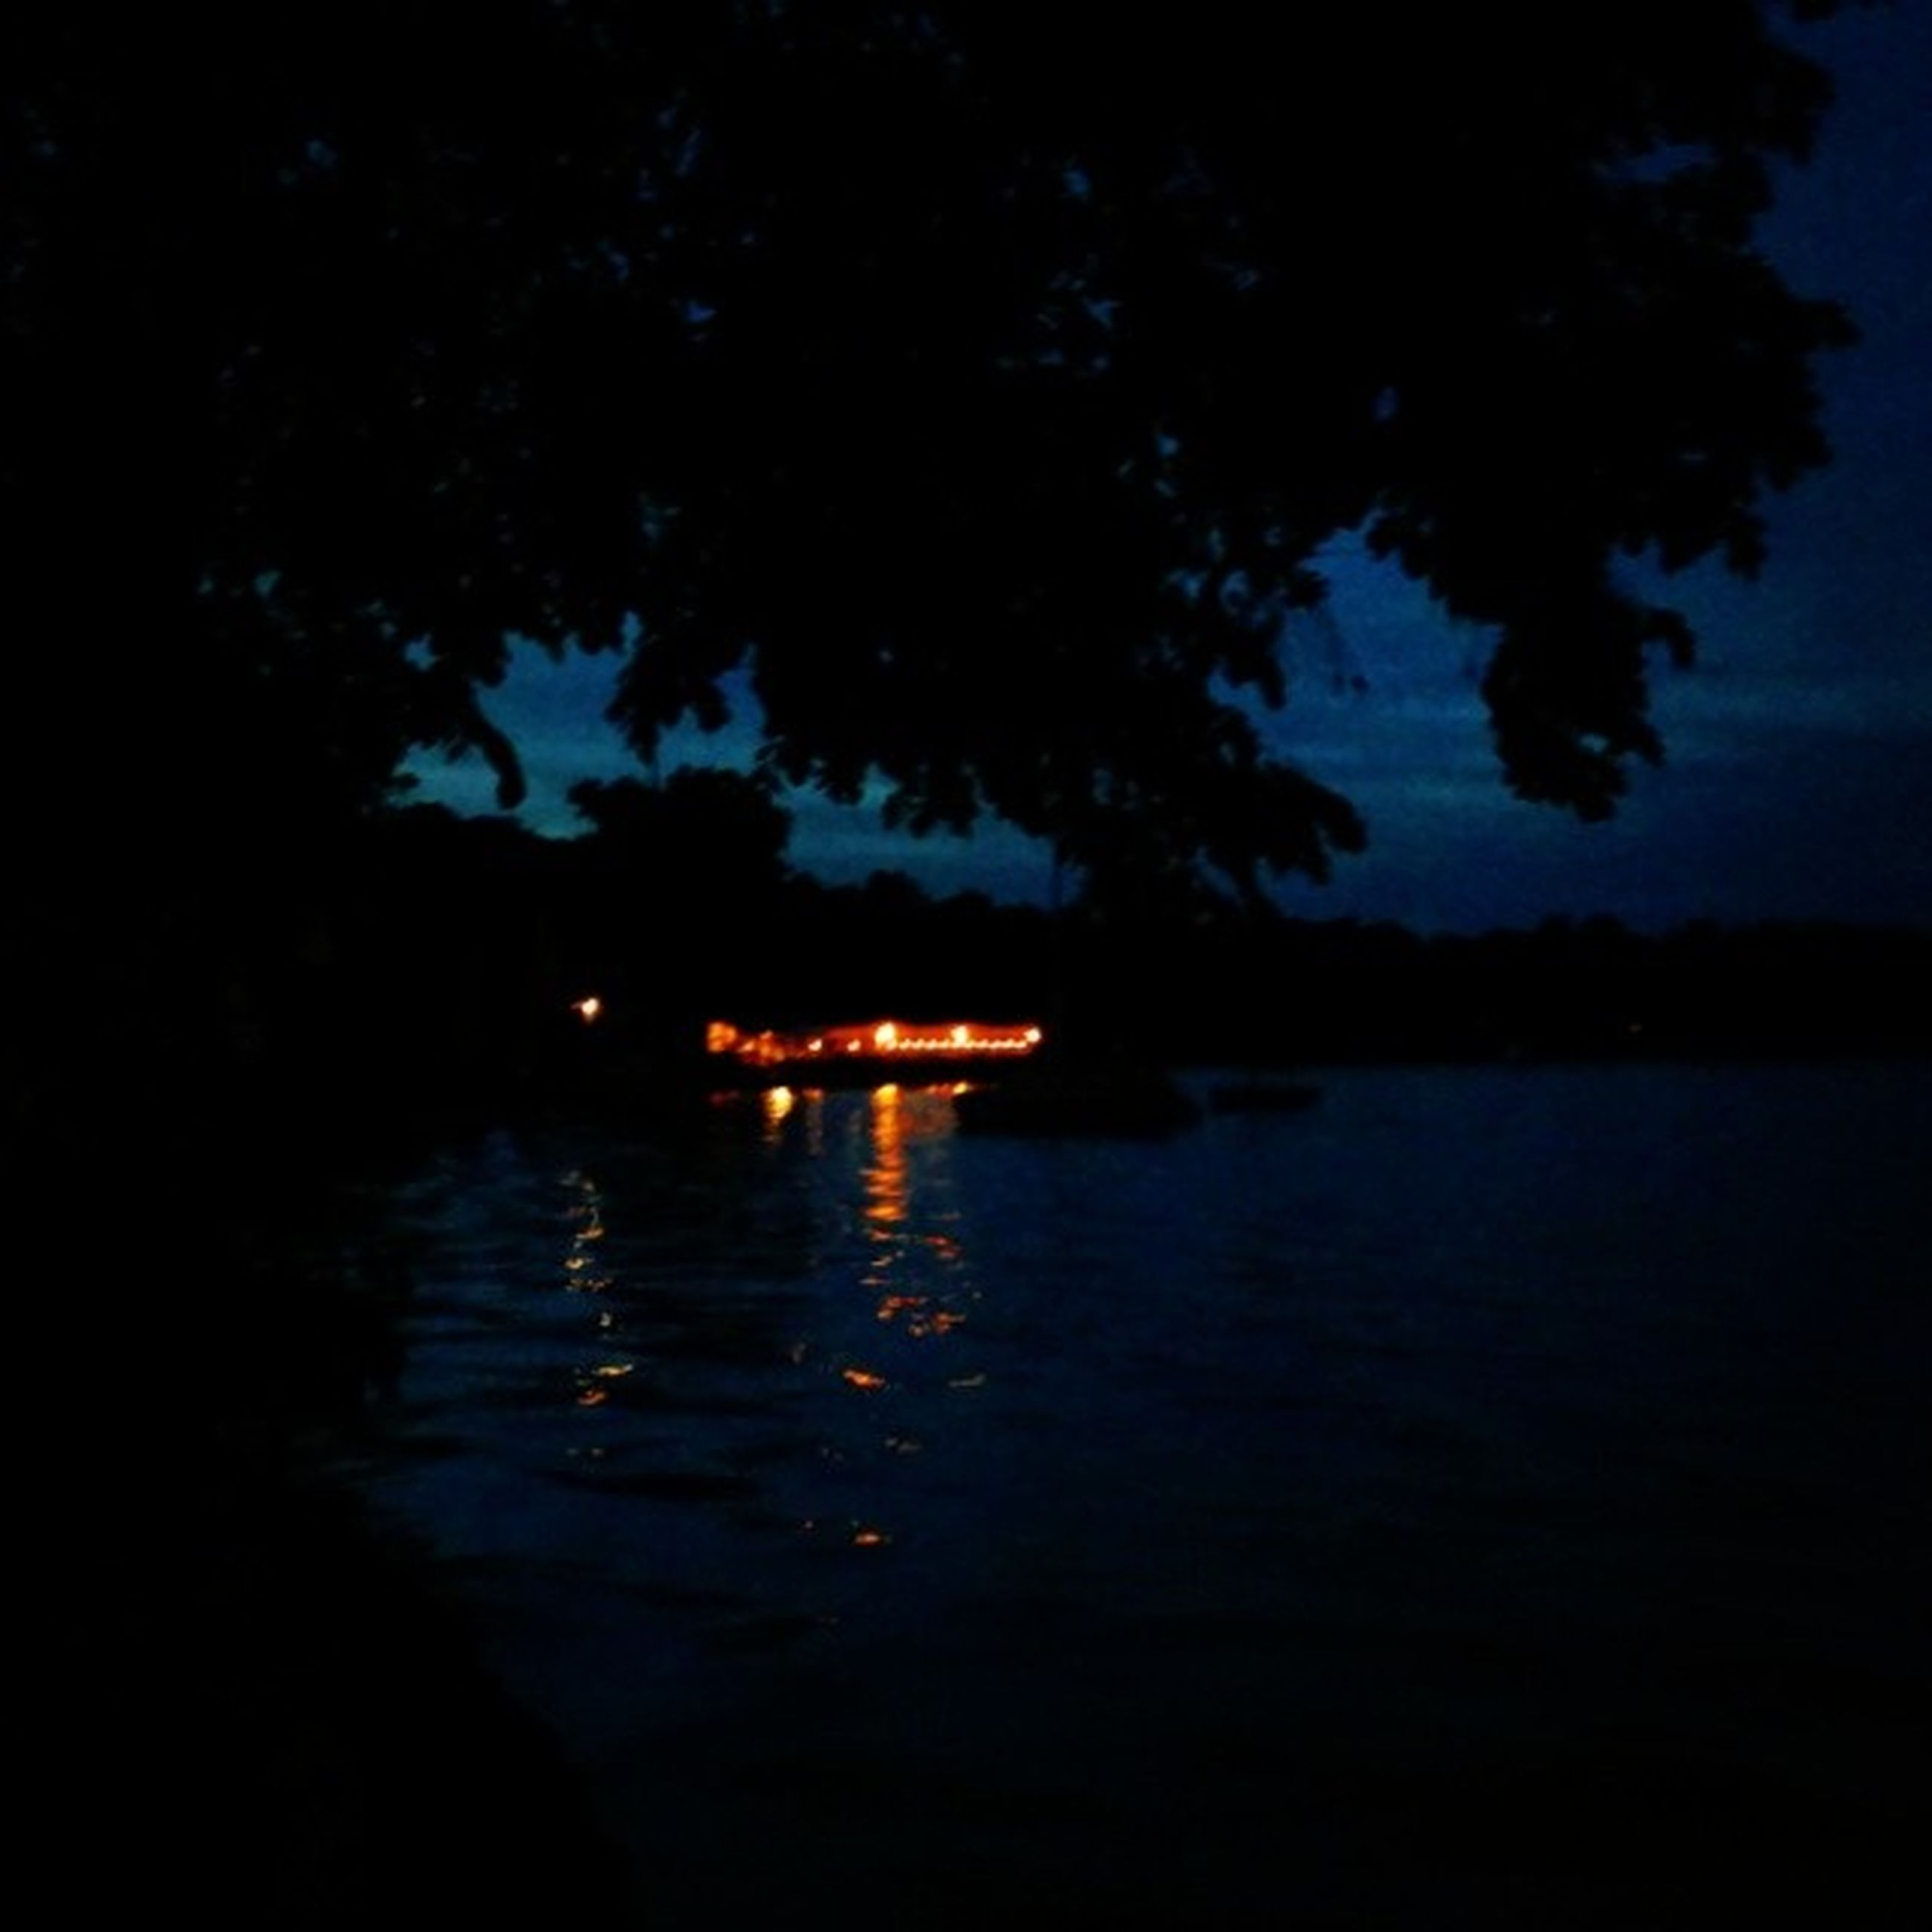 water, reflection, waterfront, night, silhouette, illuminated, sky, tranquility, lake, tree, tranquil scene, scenics, dusk, river, nature, rippled, beauty in nature, transportation, outdoors, nautical vessel